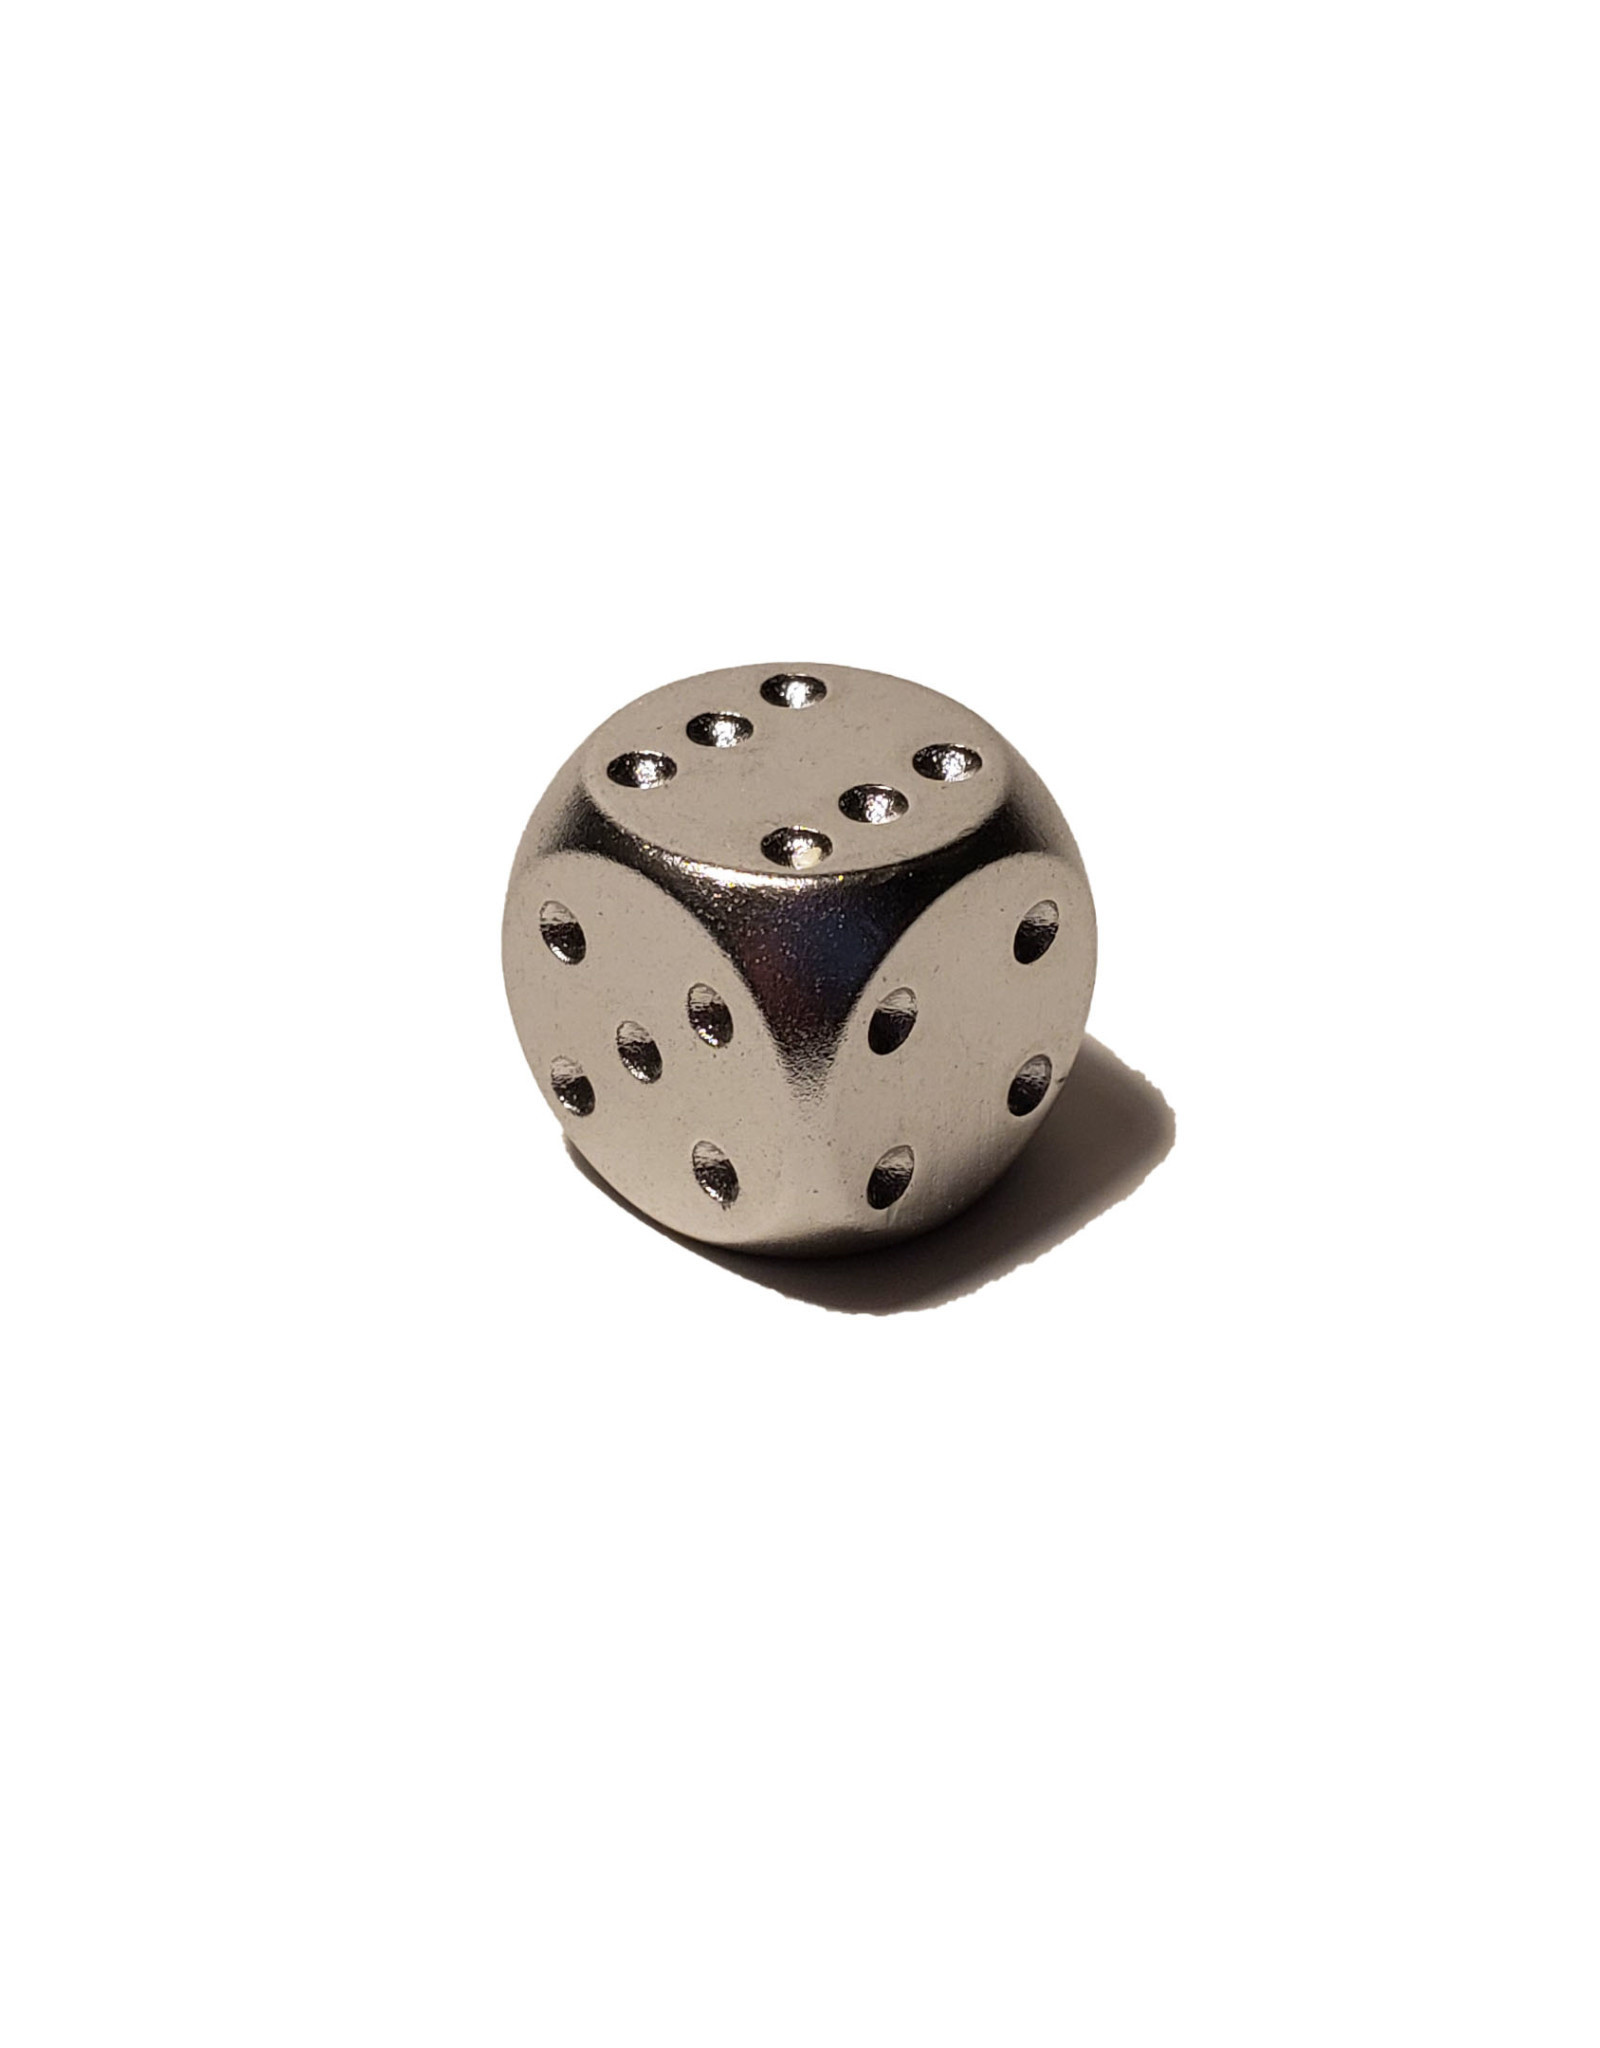 Pipped Aluminum D6 - Silver